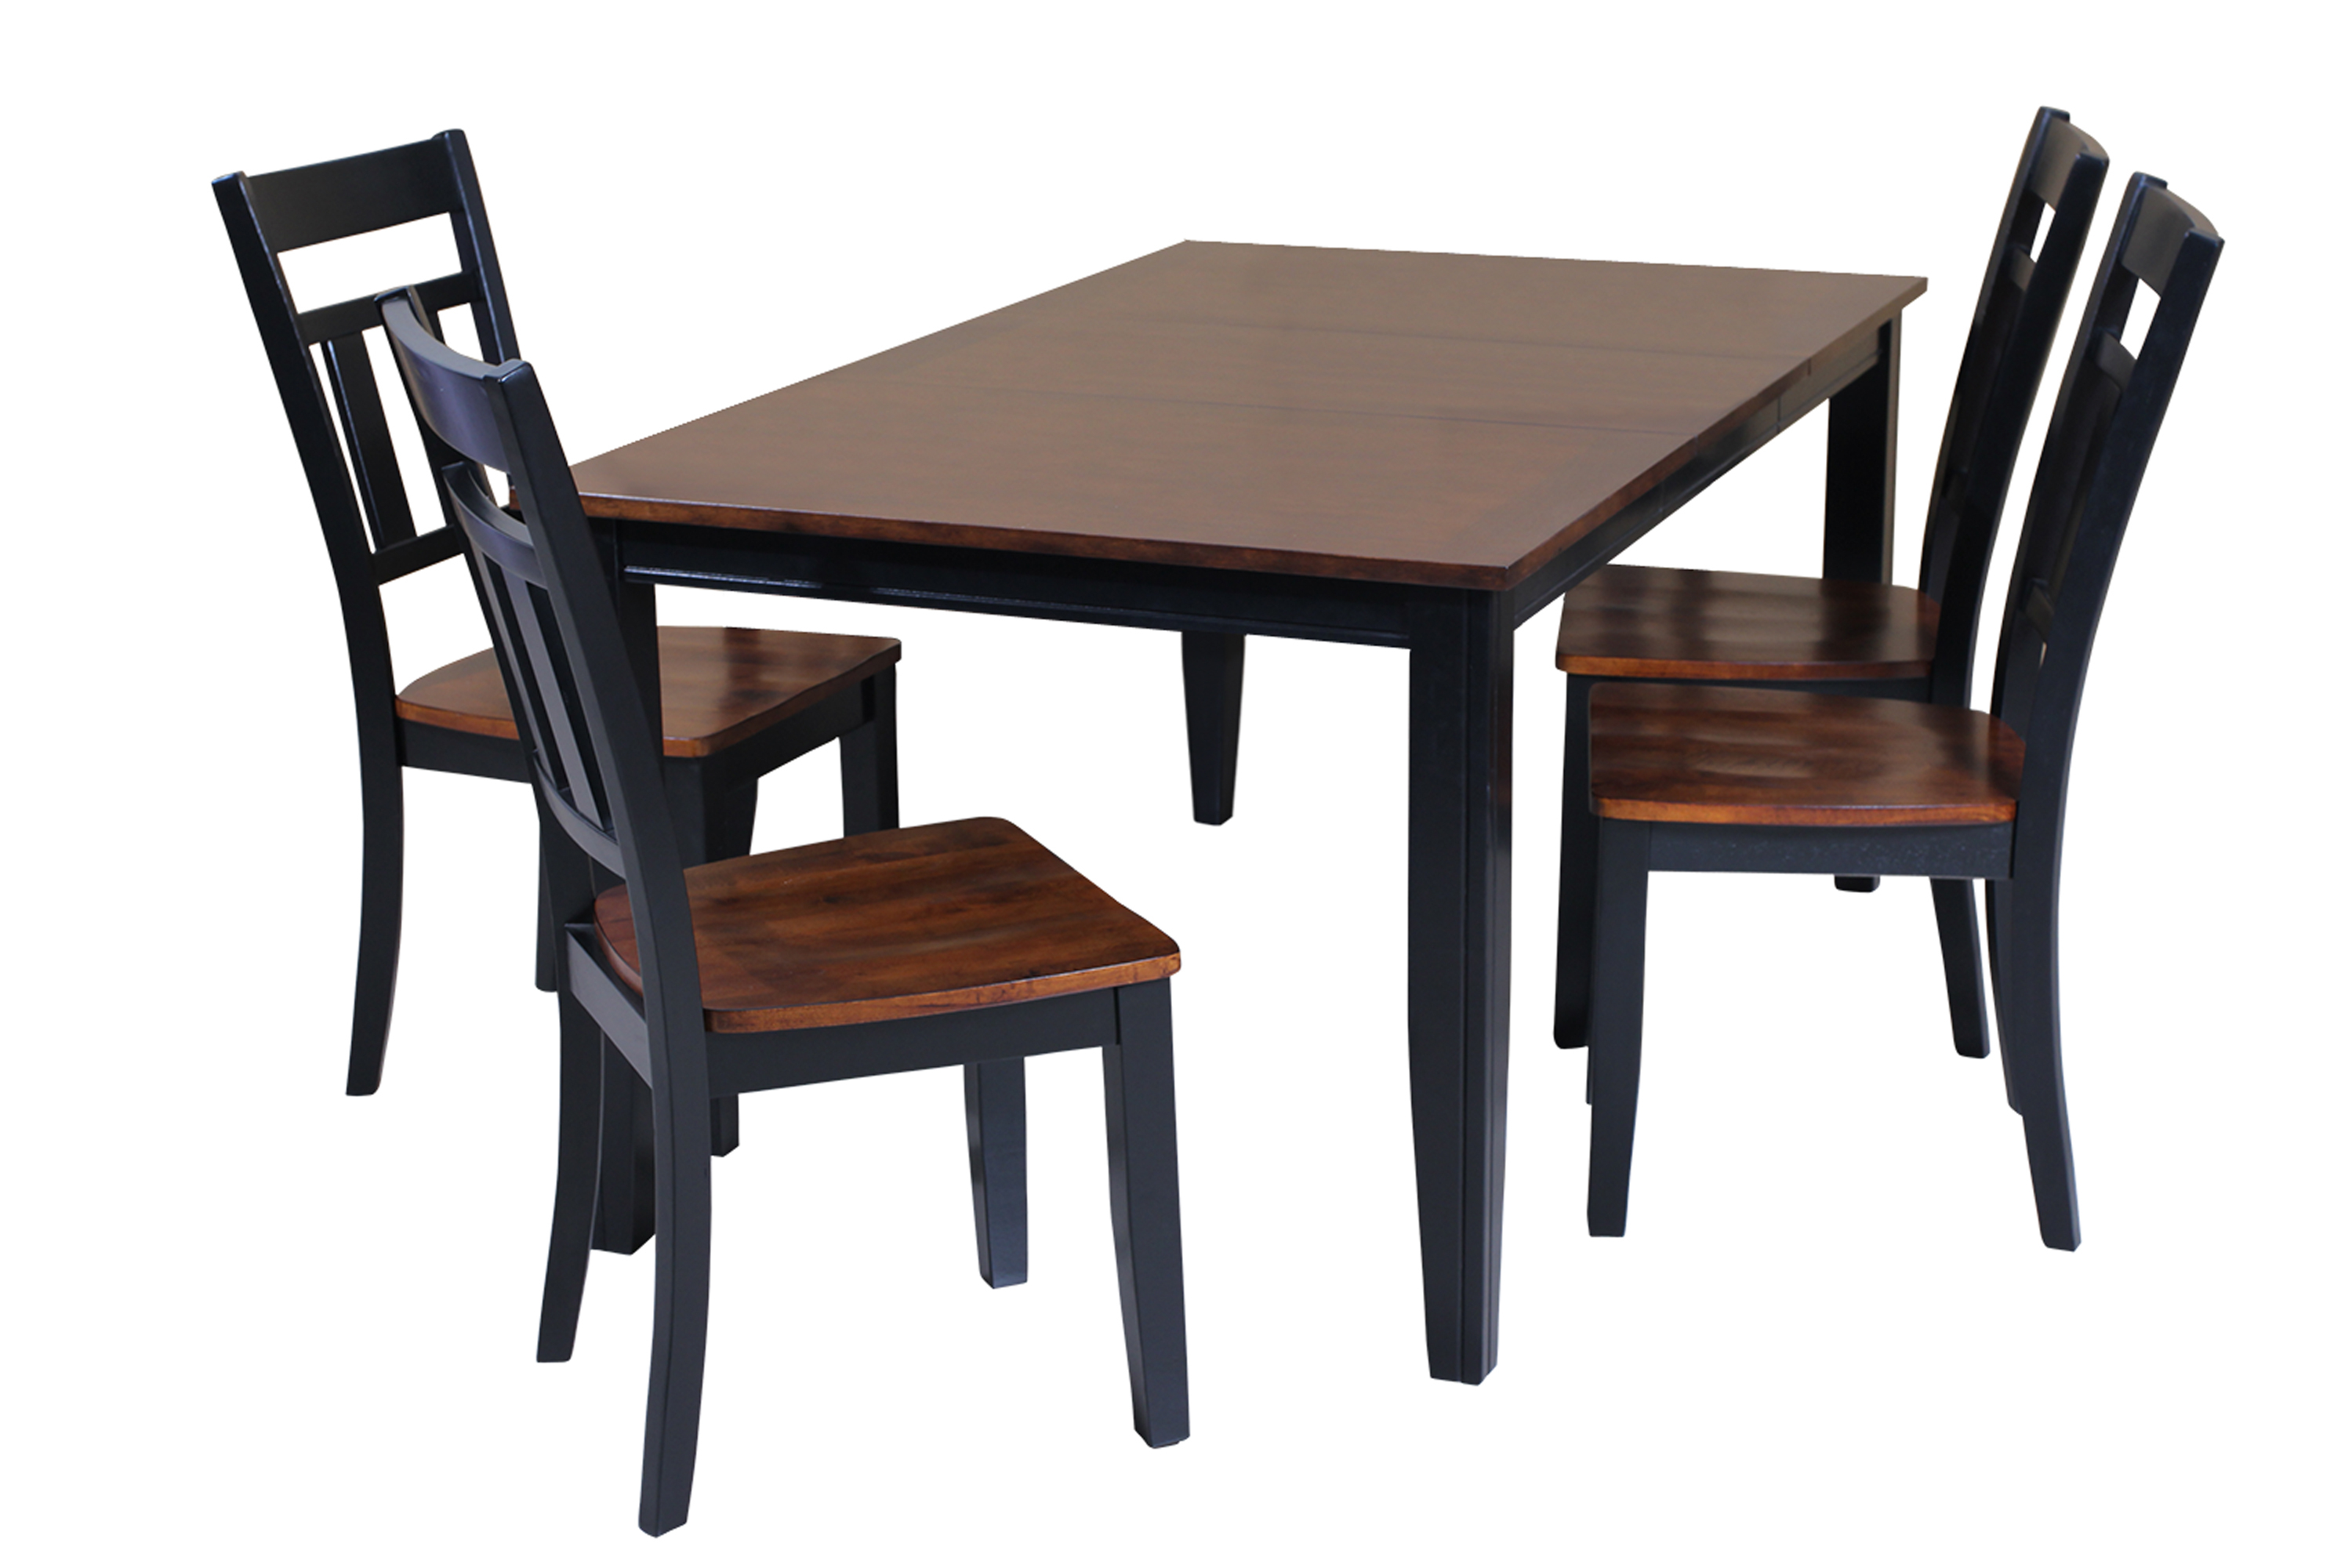 Ttp Furnish Regarding Well Liked Adan 5 Piece Solid Wood Dining Sets (Set Of 5) (View 12 of 25)